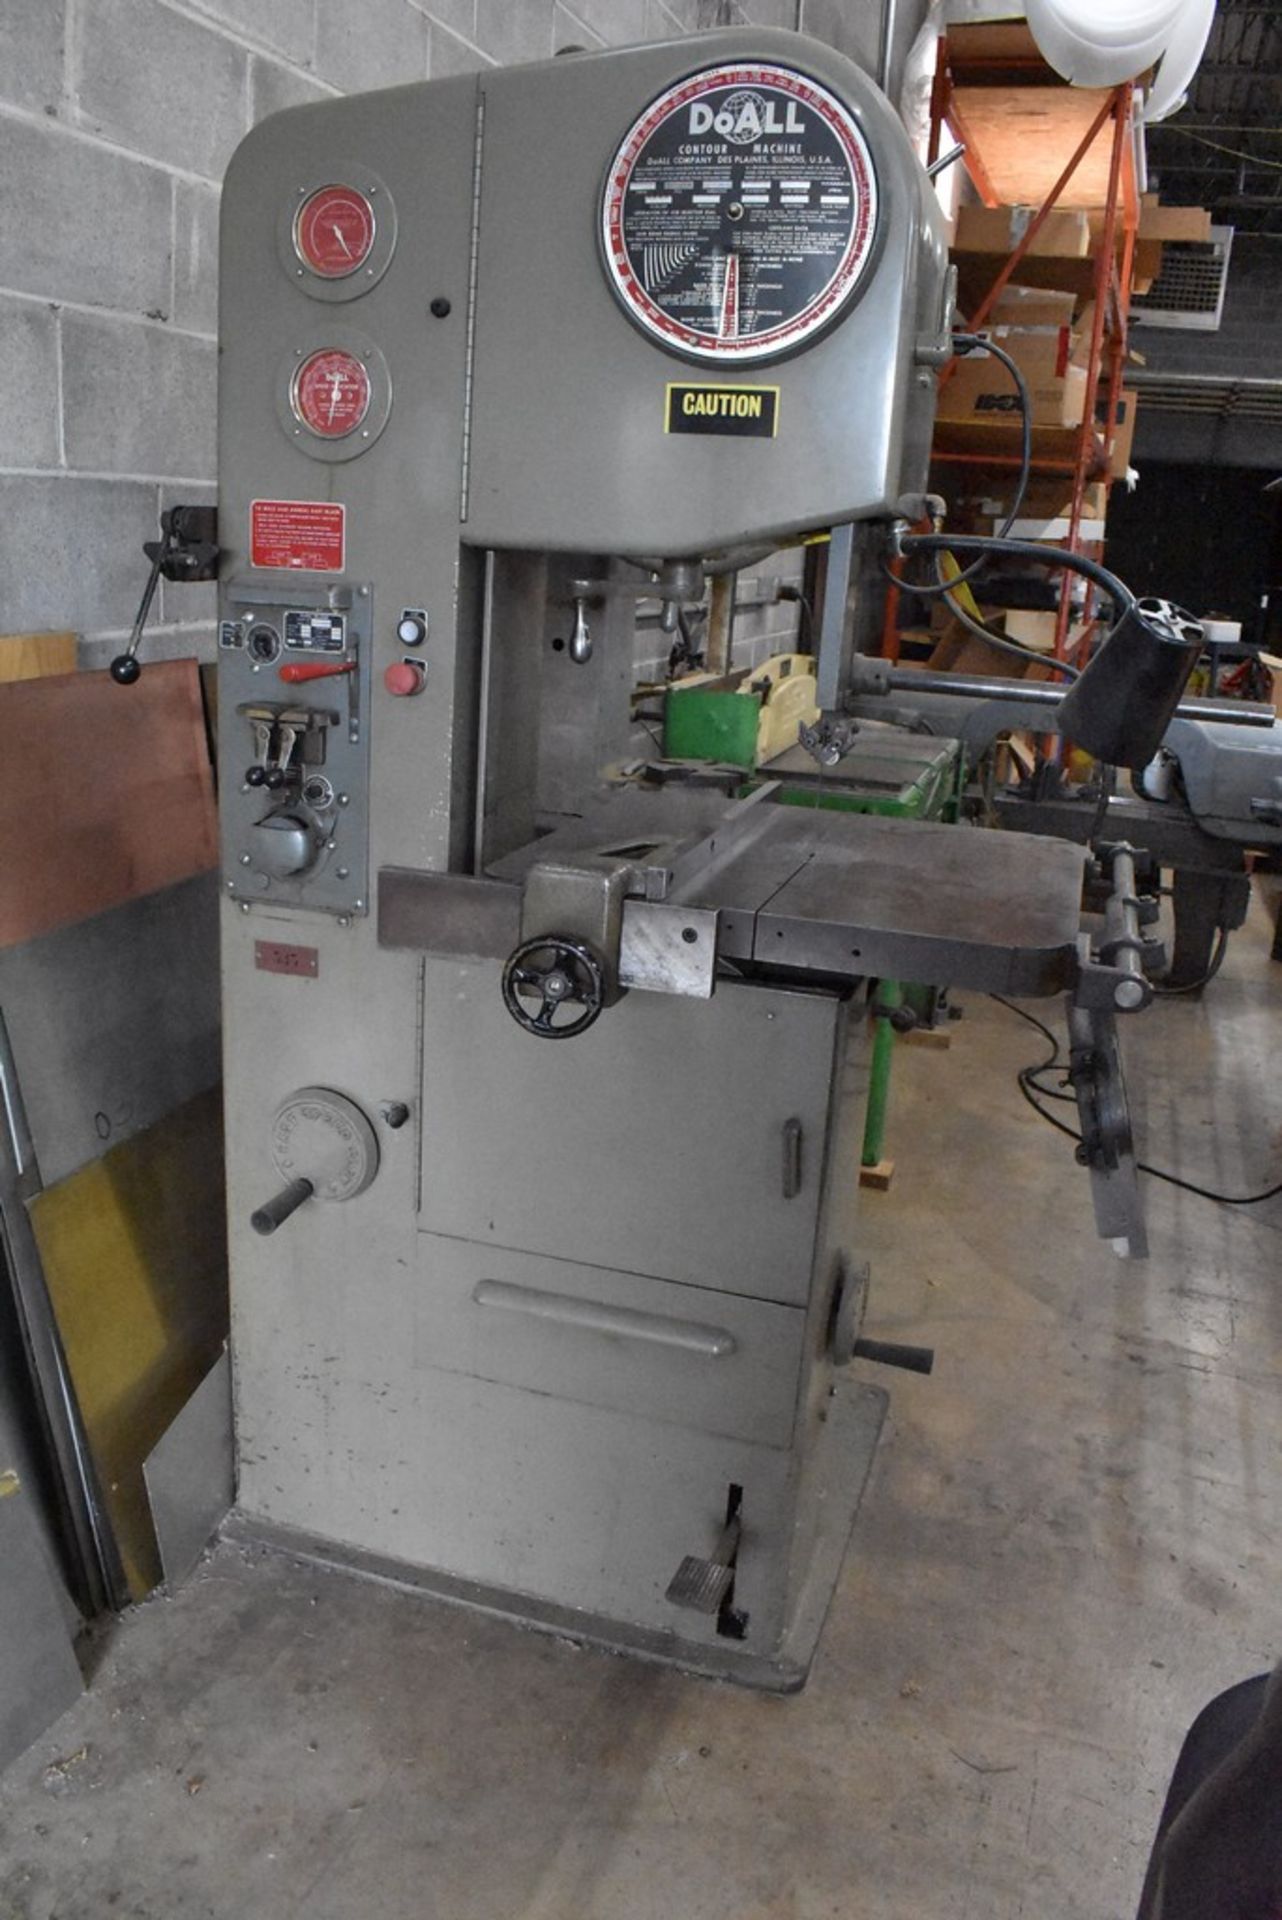 """DOALL 16"""" MODEL 1612-1 VERTICAL BAND SAW, S/N 148-681291, WITH BLADE WELDER"""